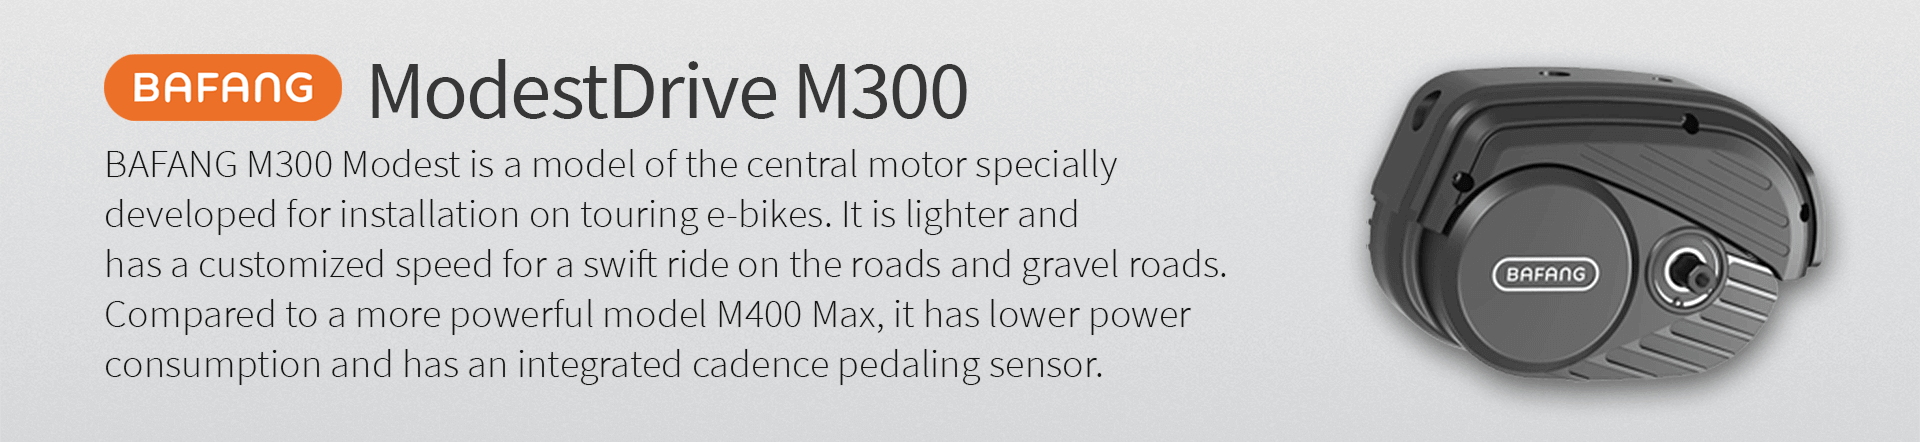 BAFANG M300 Modest is a model of the central motor specially  developed for installation on touring e-bikes. It is lighter and  has a customized speed for a swift ride on the roads and gravel roads.  Compared to a more powerful model M400 Max, it has lower power  consumption and has an integrated cadence pedaling sensor.